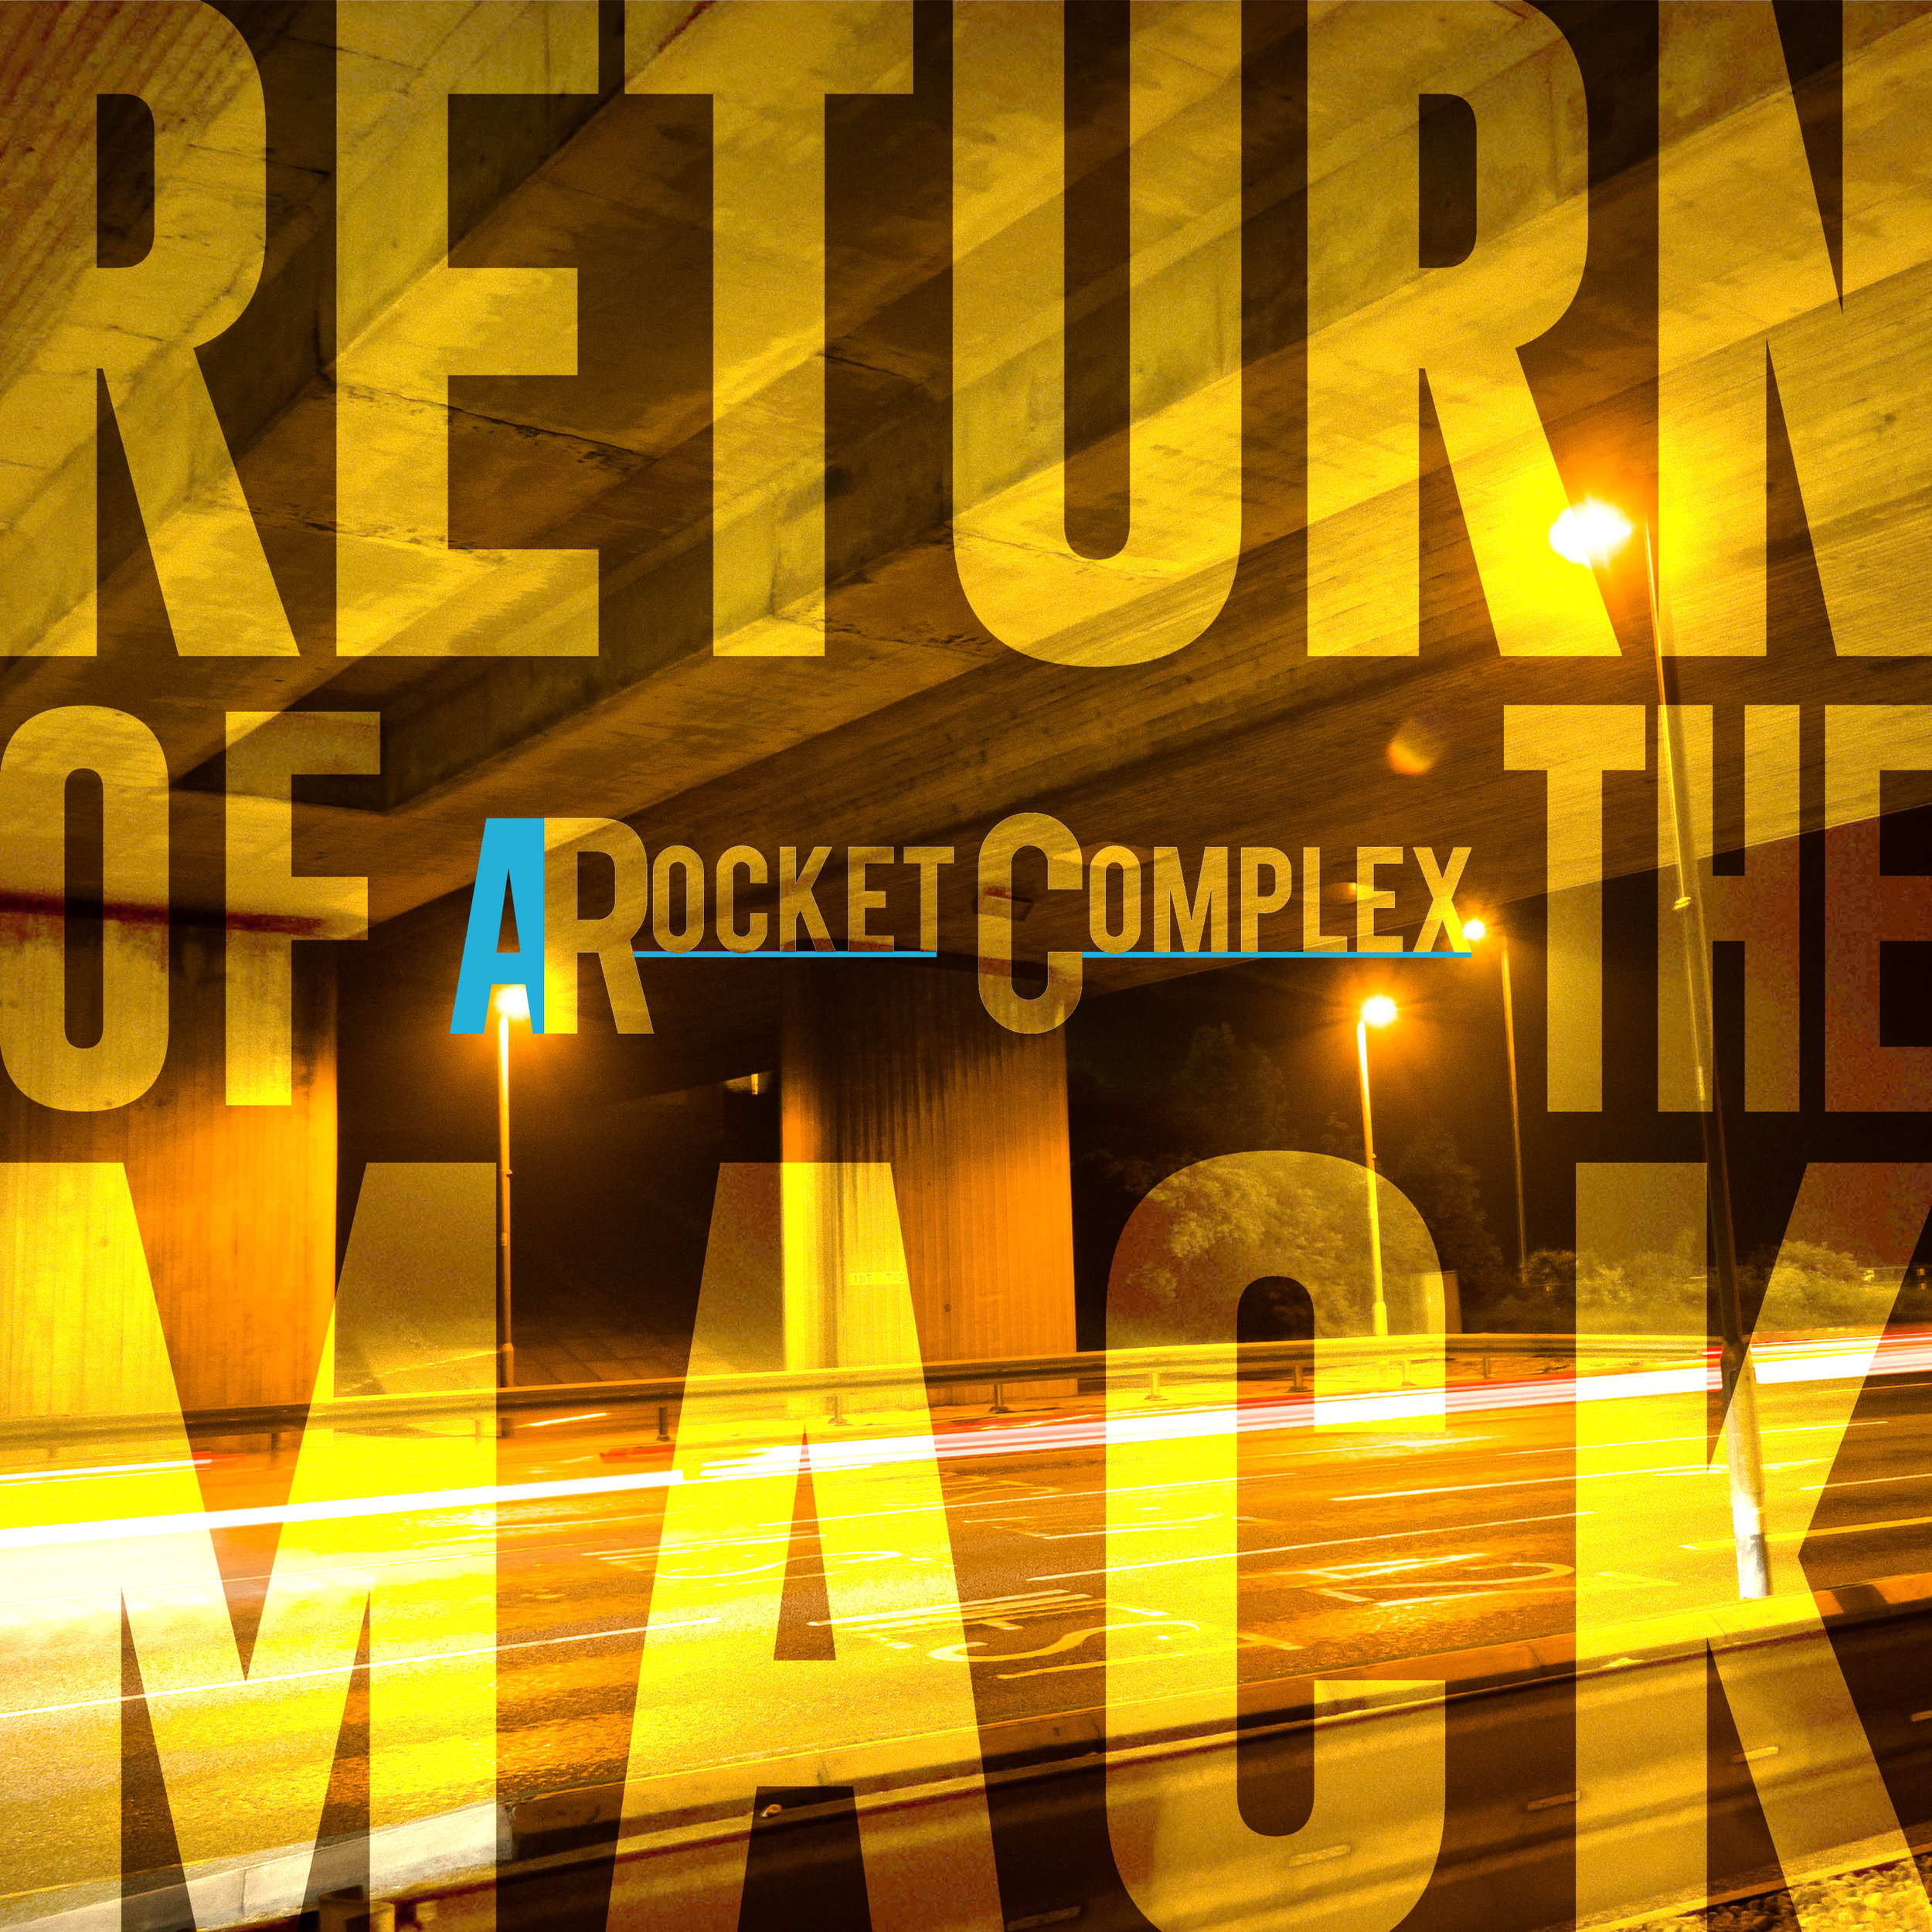 Click here to watch the trailer for our next music video - return of the mack